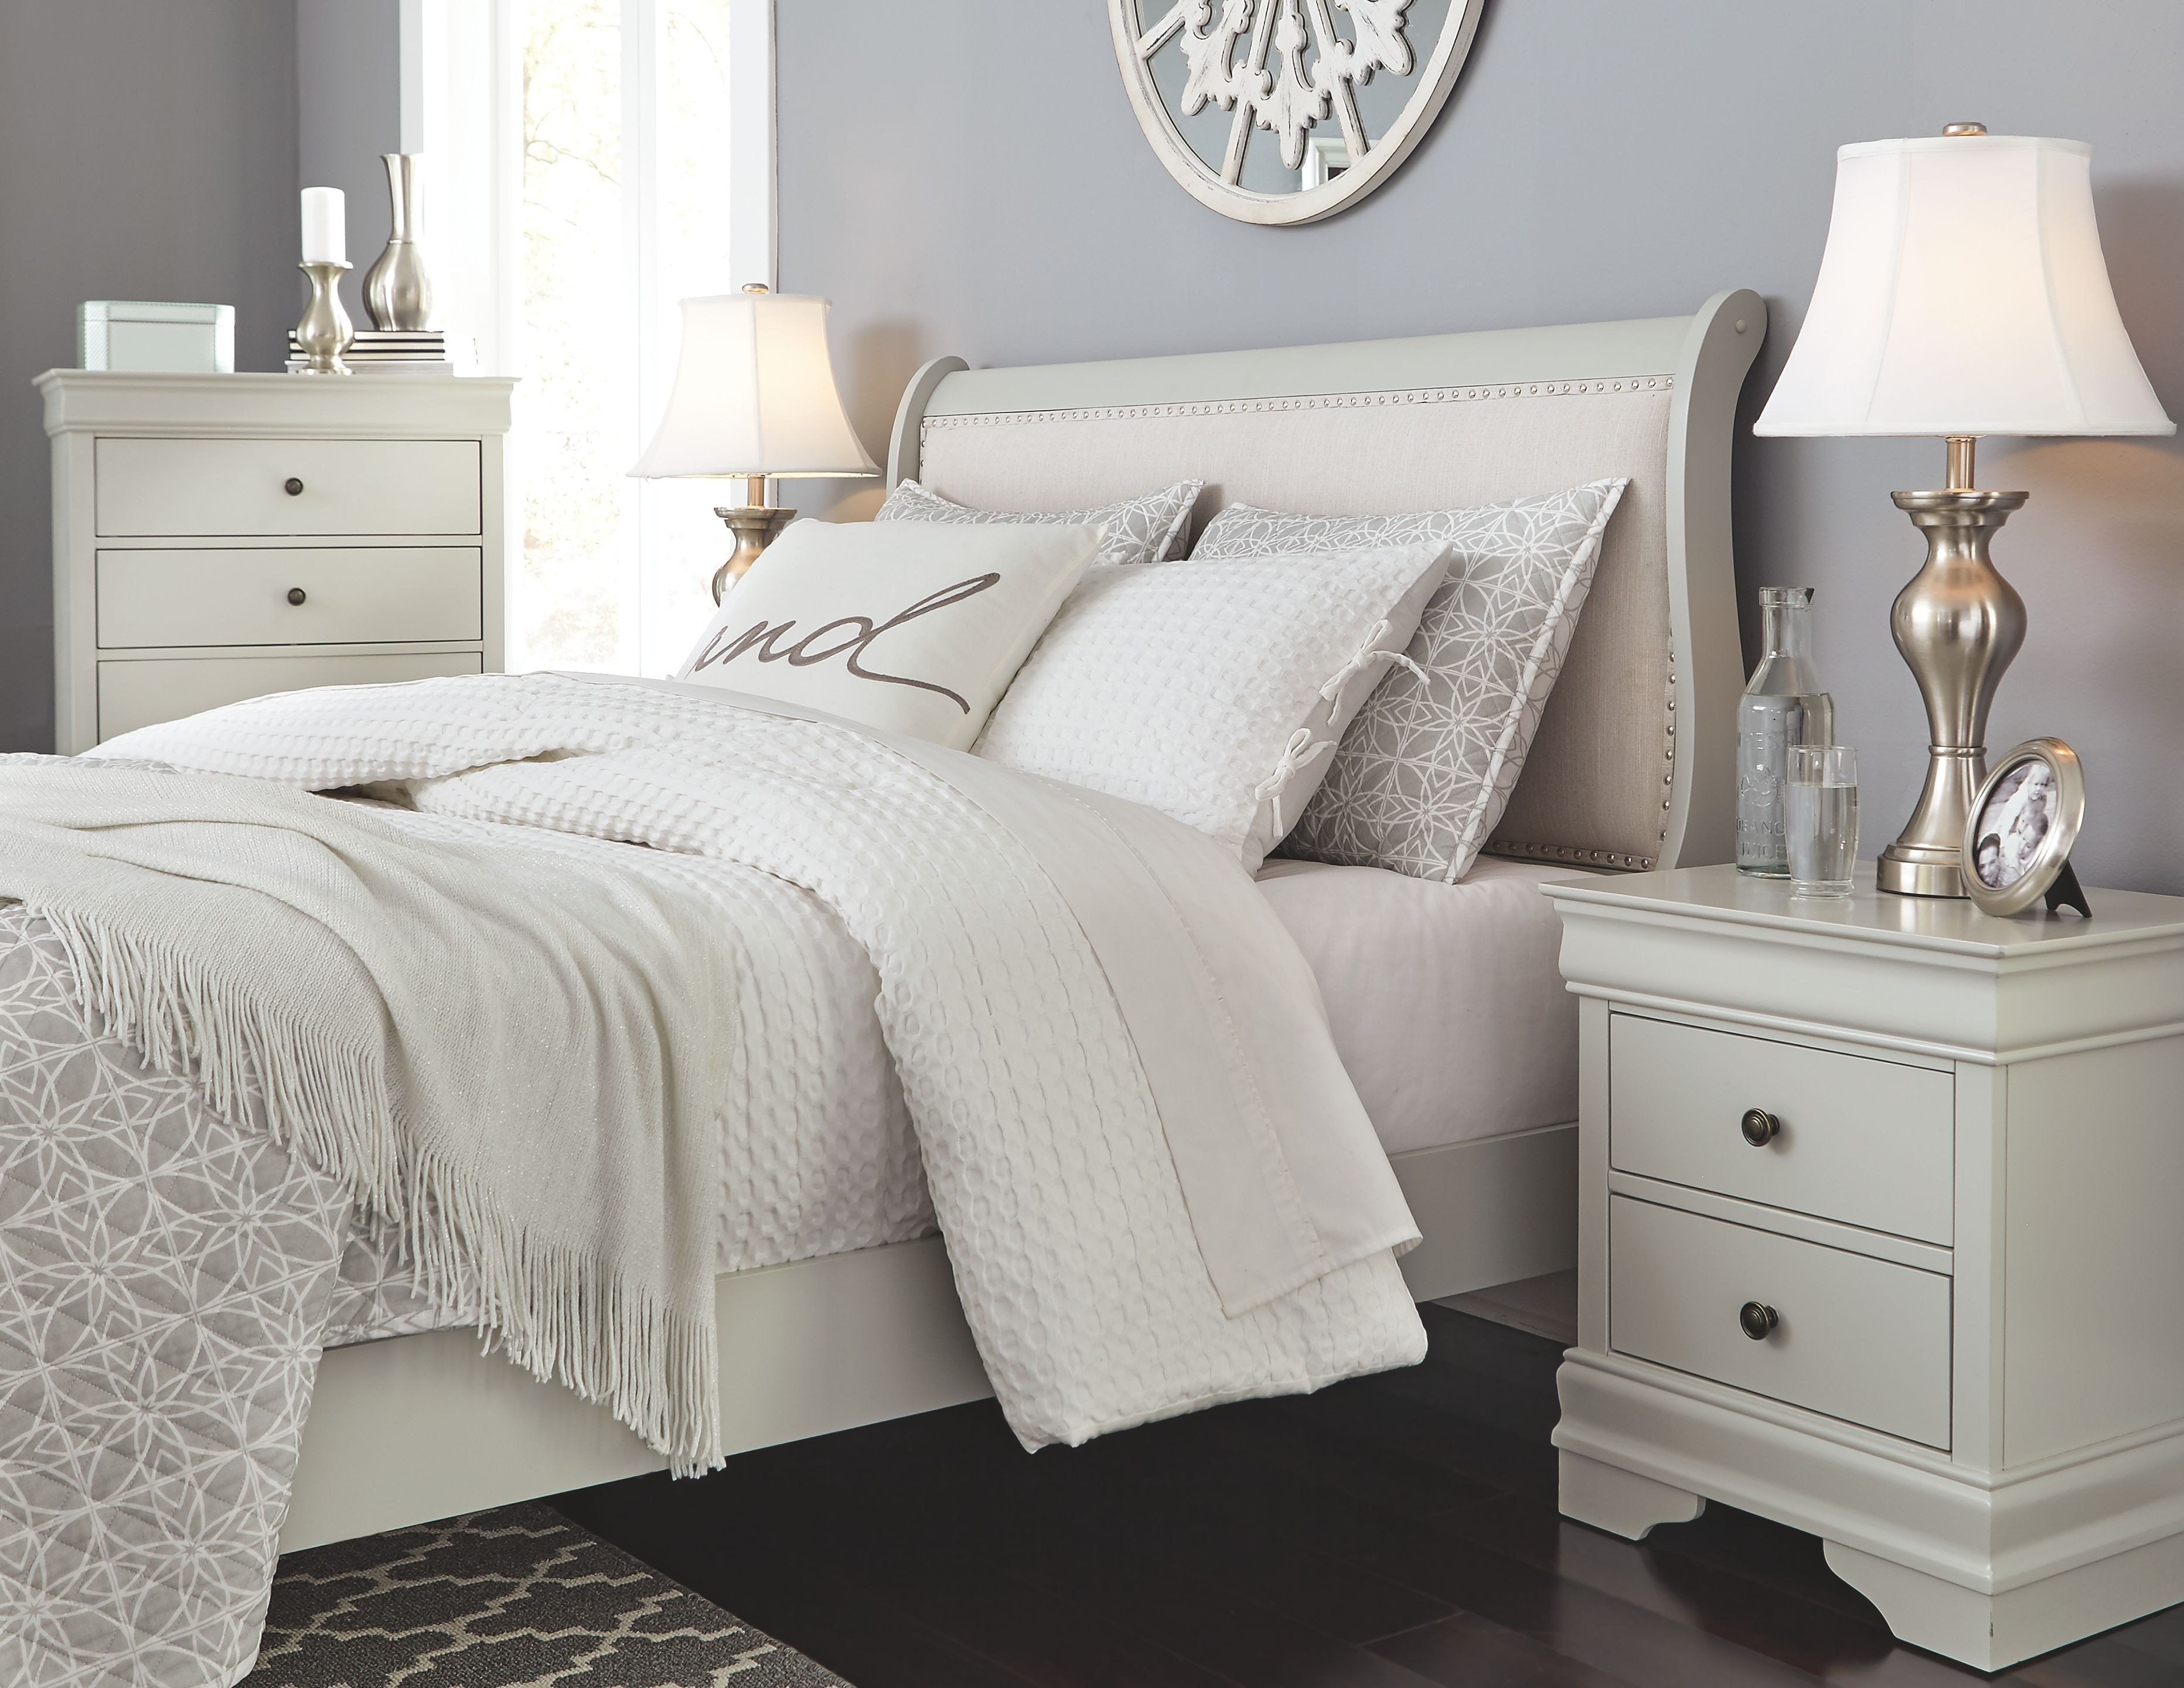 King Size Bedroom Ideas Beautiful Jorstad Full Bed with 2 Nightstands Gray